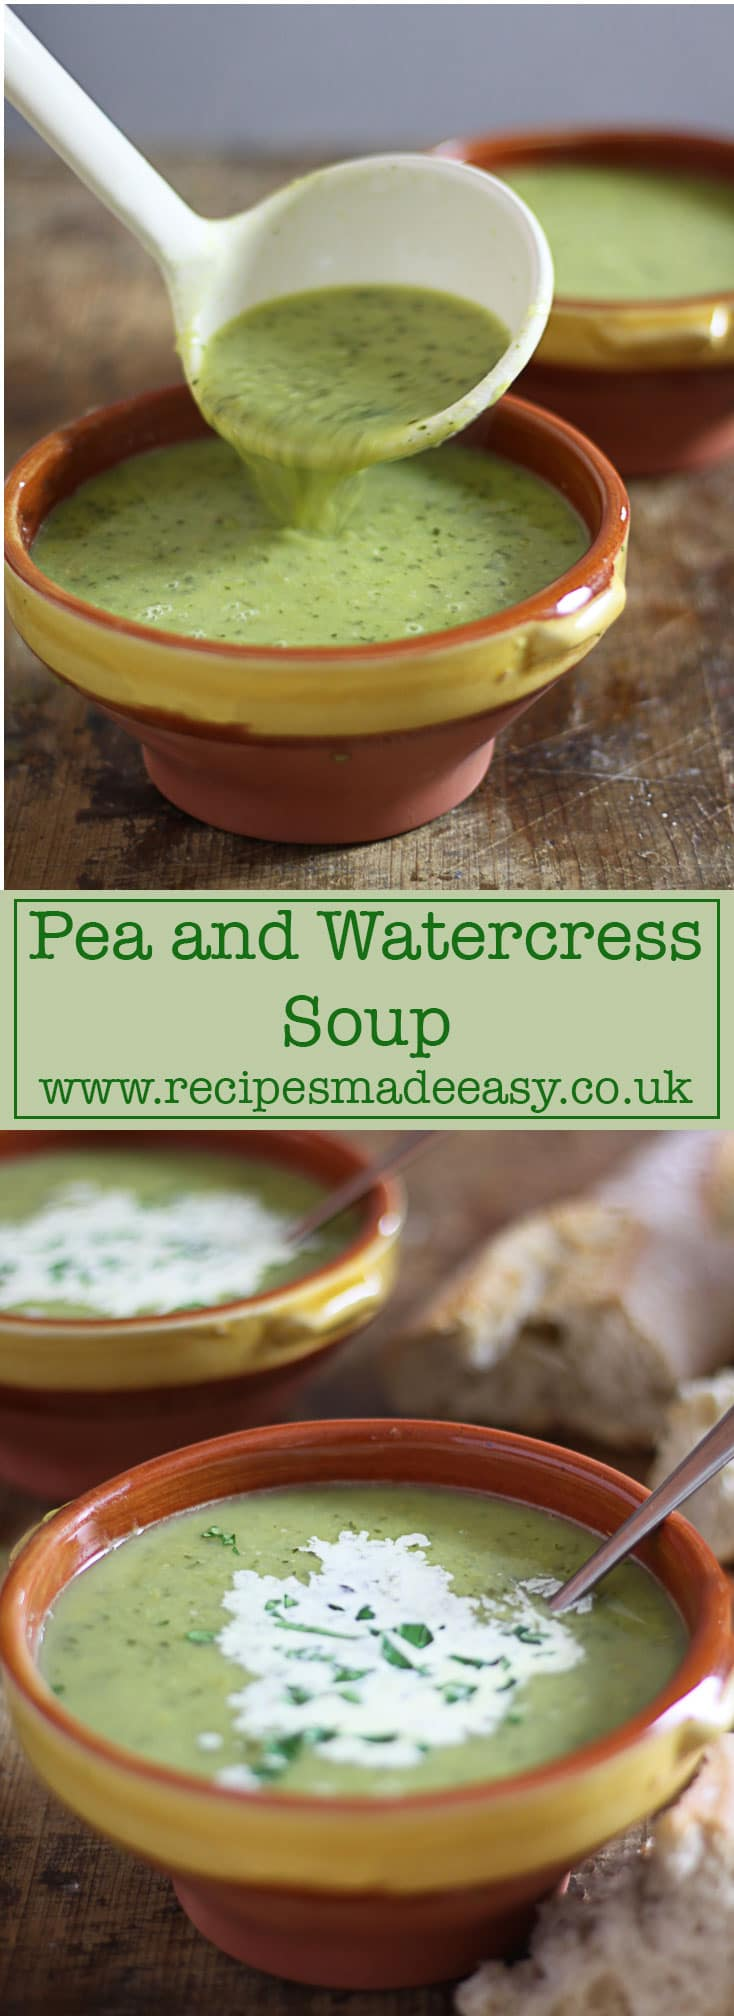 Recipes Made Easy - Pea and Watercress Soup – a deliciously easy to make soup.